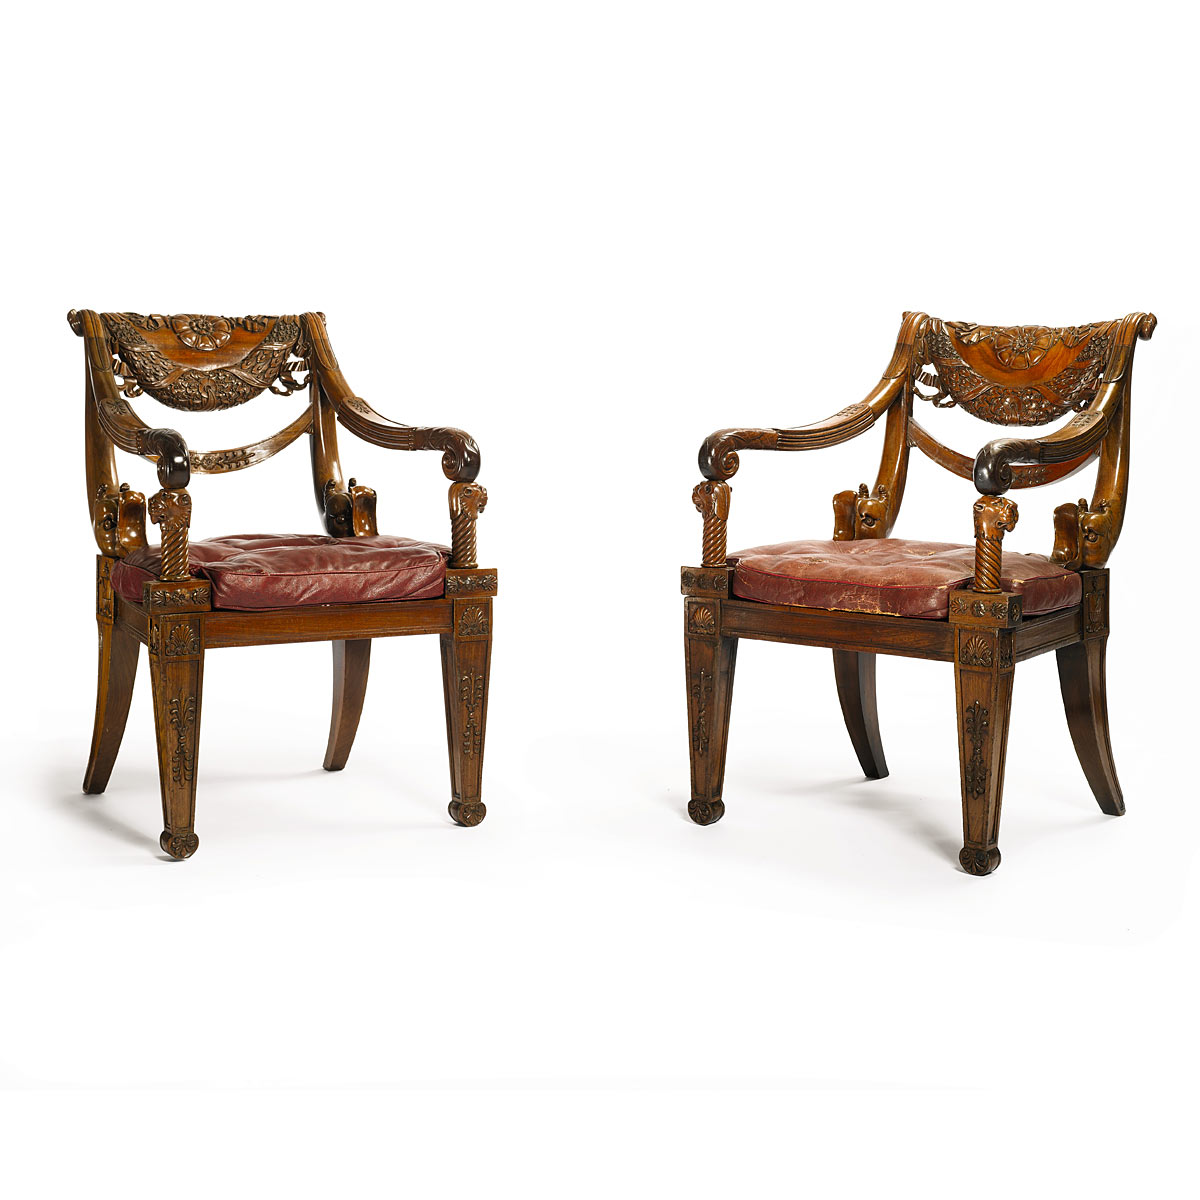 George IV Mahogany Armchairs from Hamilton Palace